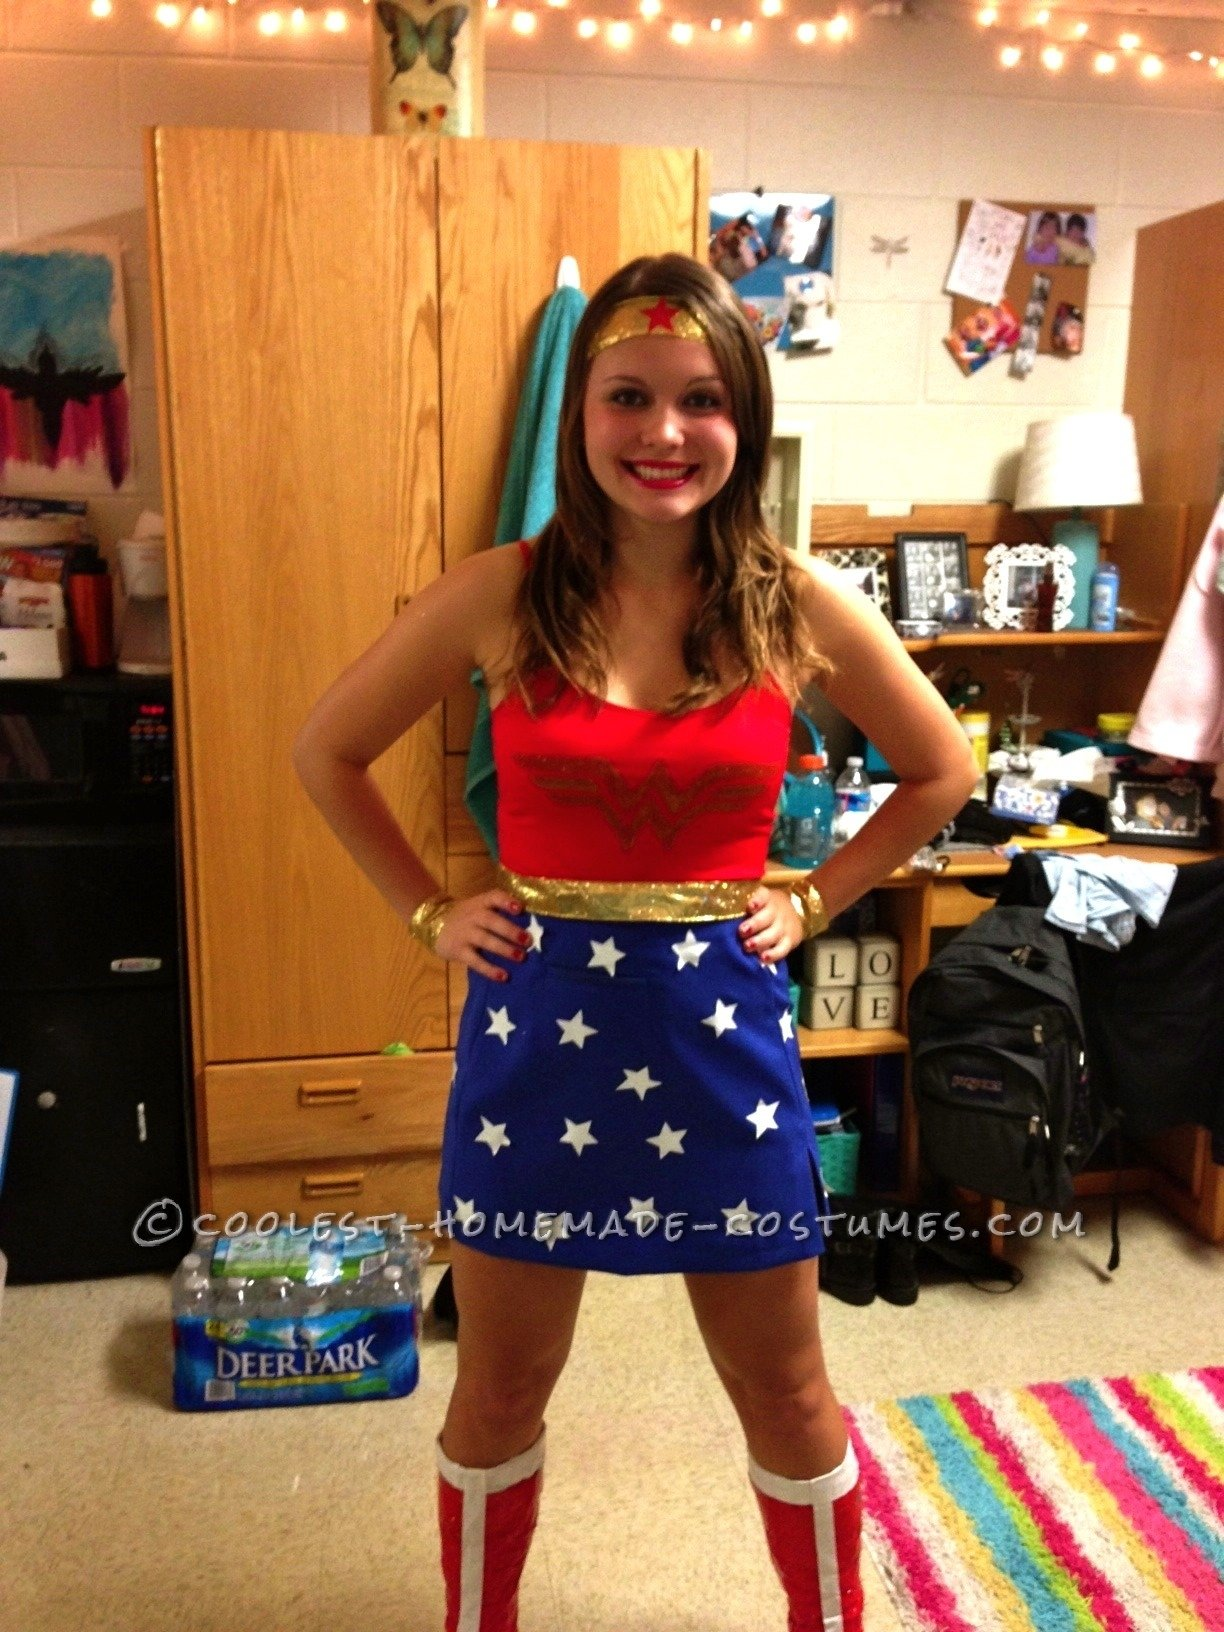 10 Famous Clever Halloween Costume Ideas Women homemade wonder woman costume 1 2020